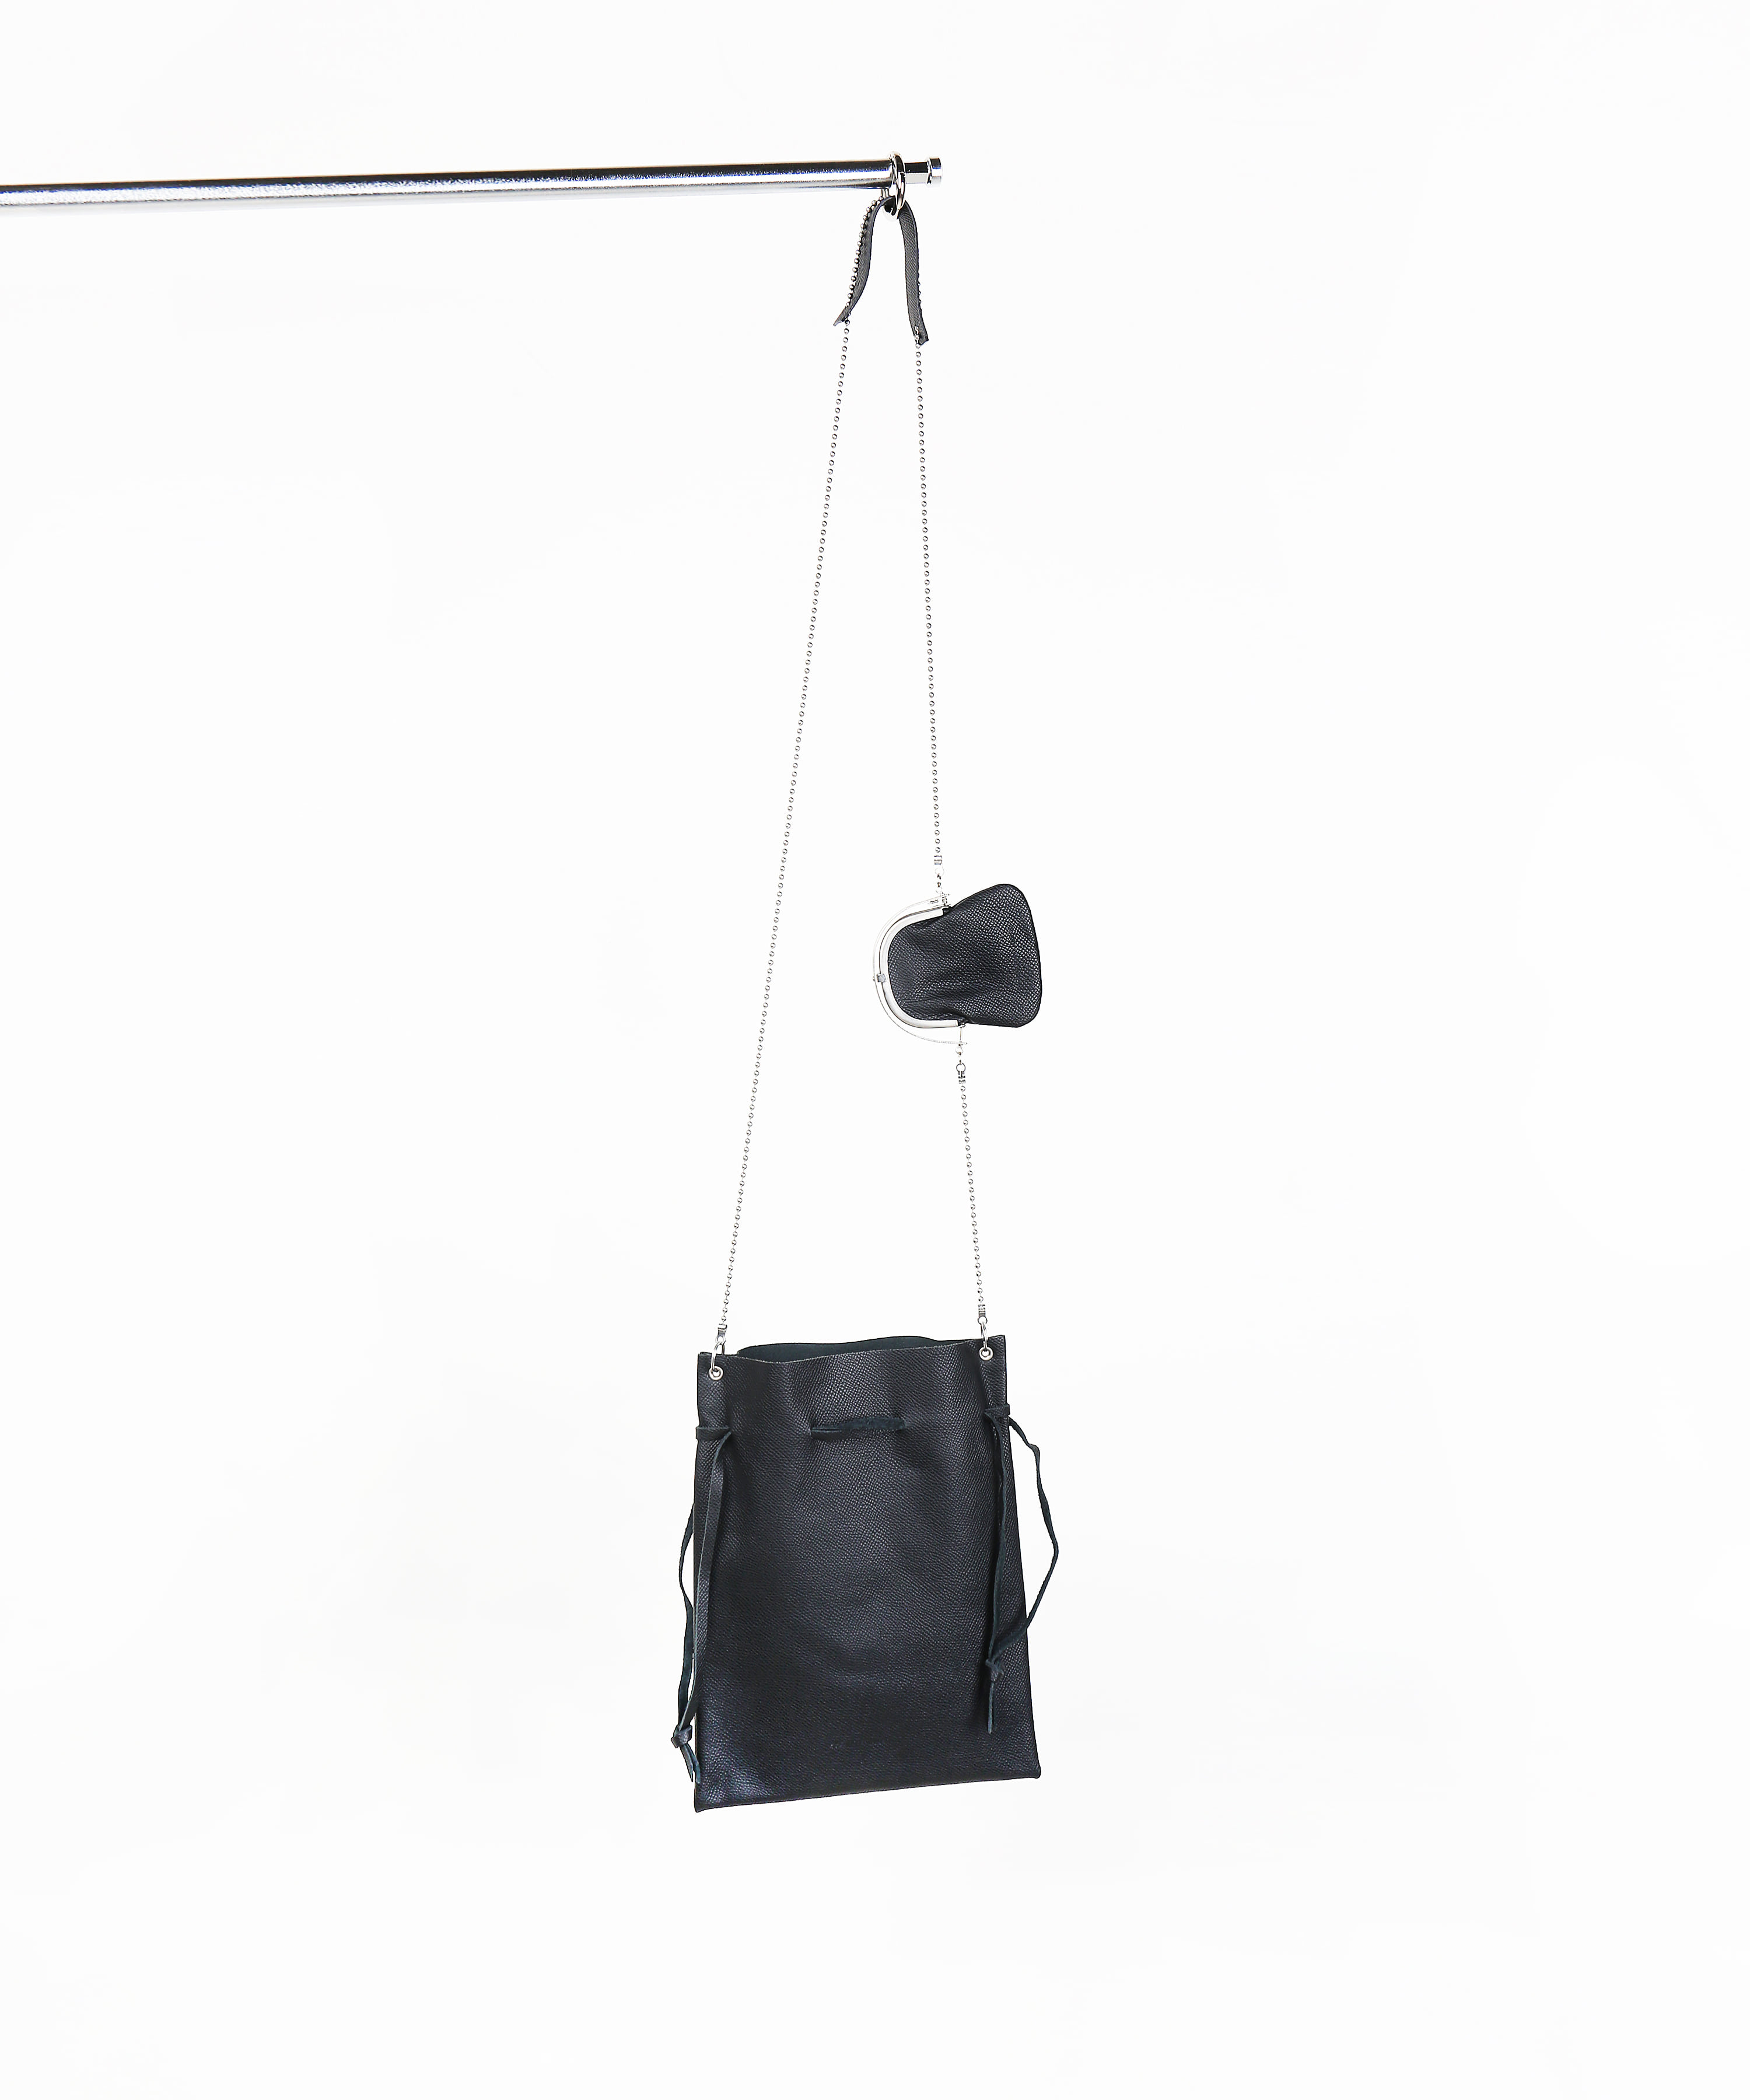 ODD - FRAME PURSE WITH POUCH BLACK